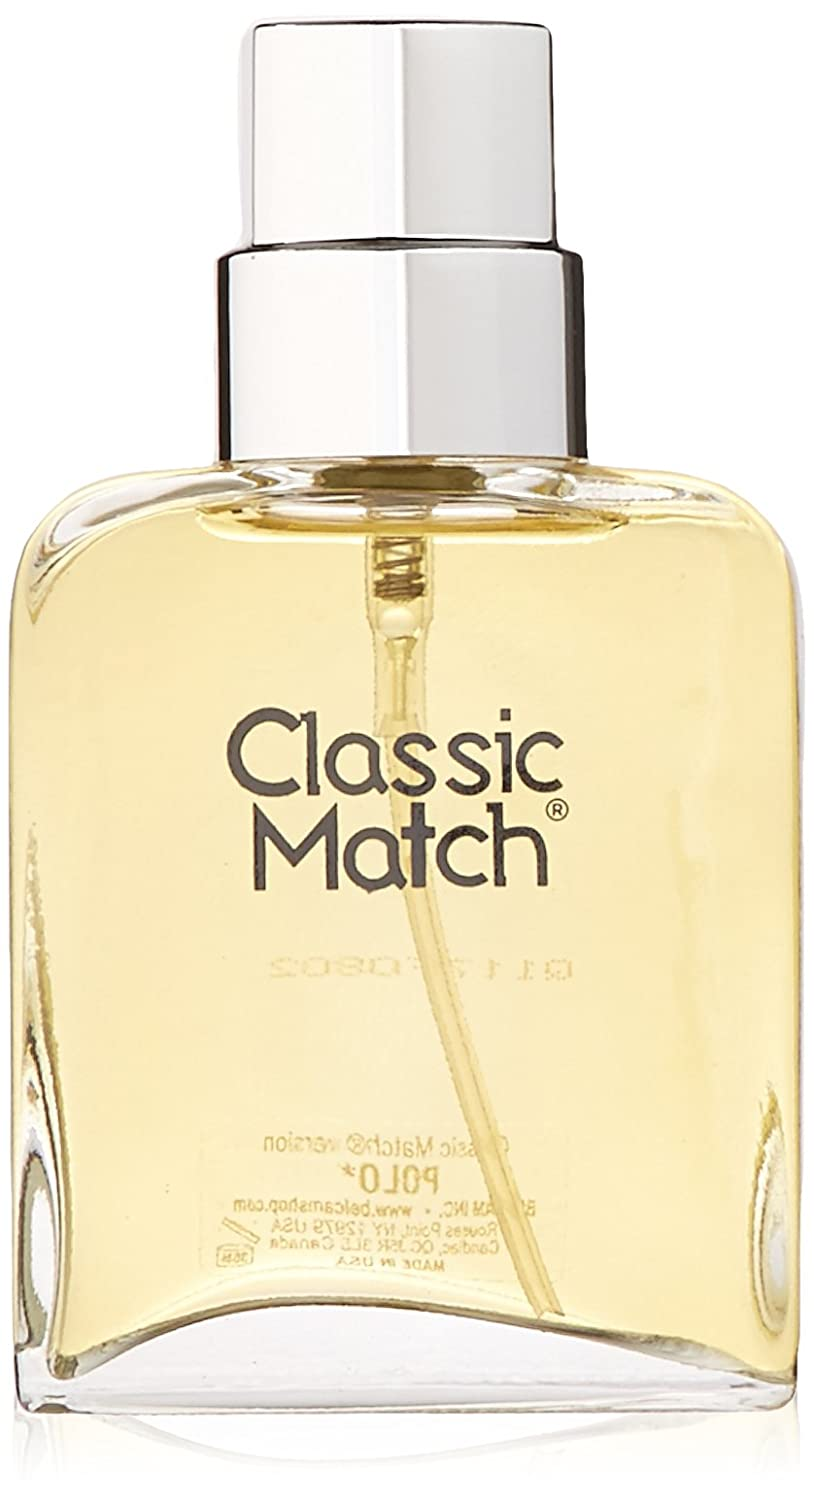 Parfums Belcam 75 ml Men's Fragrance Classic Match Polo Belcam Bath Therapy F37467-04-PO